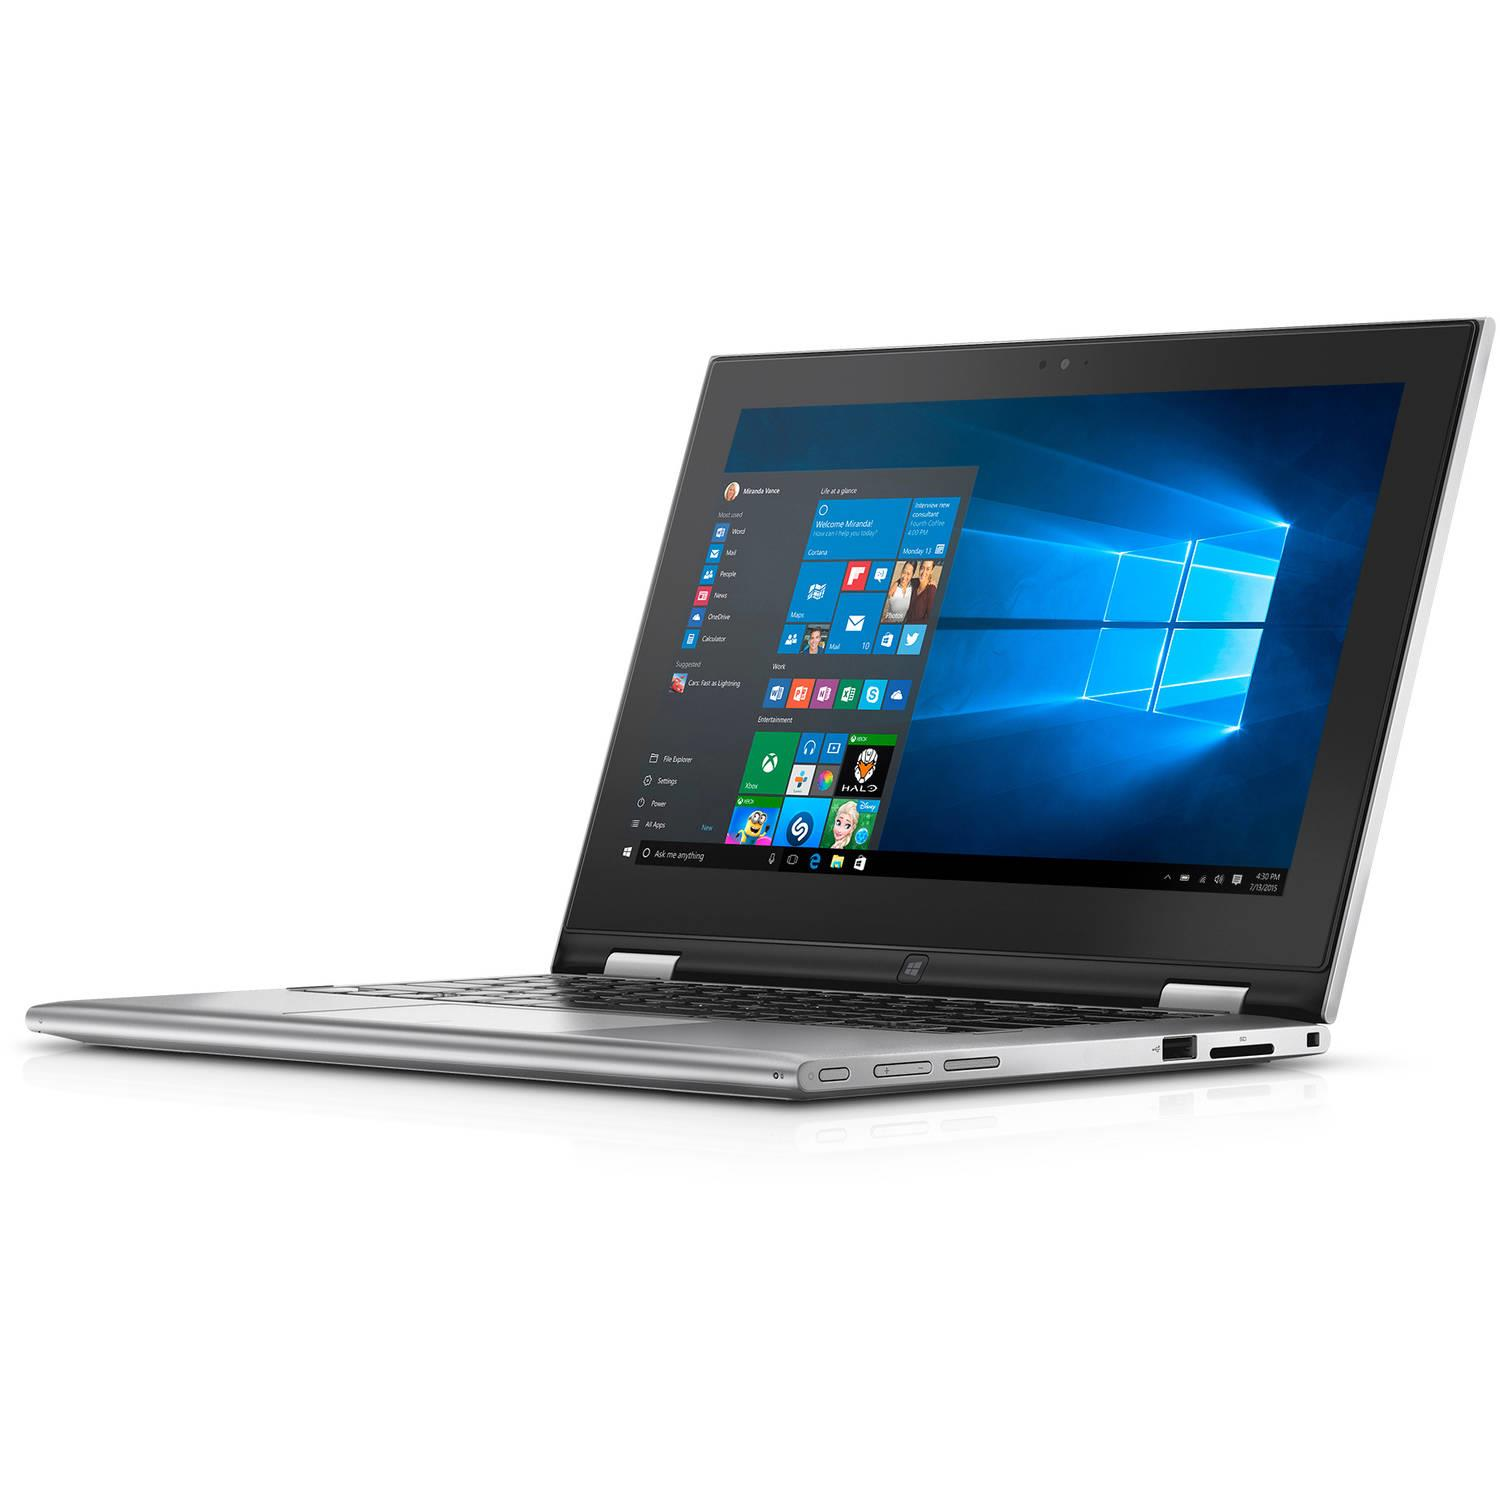 Dell Inspiron 3148 Laptop Image